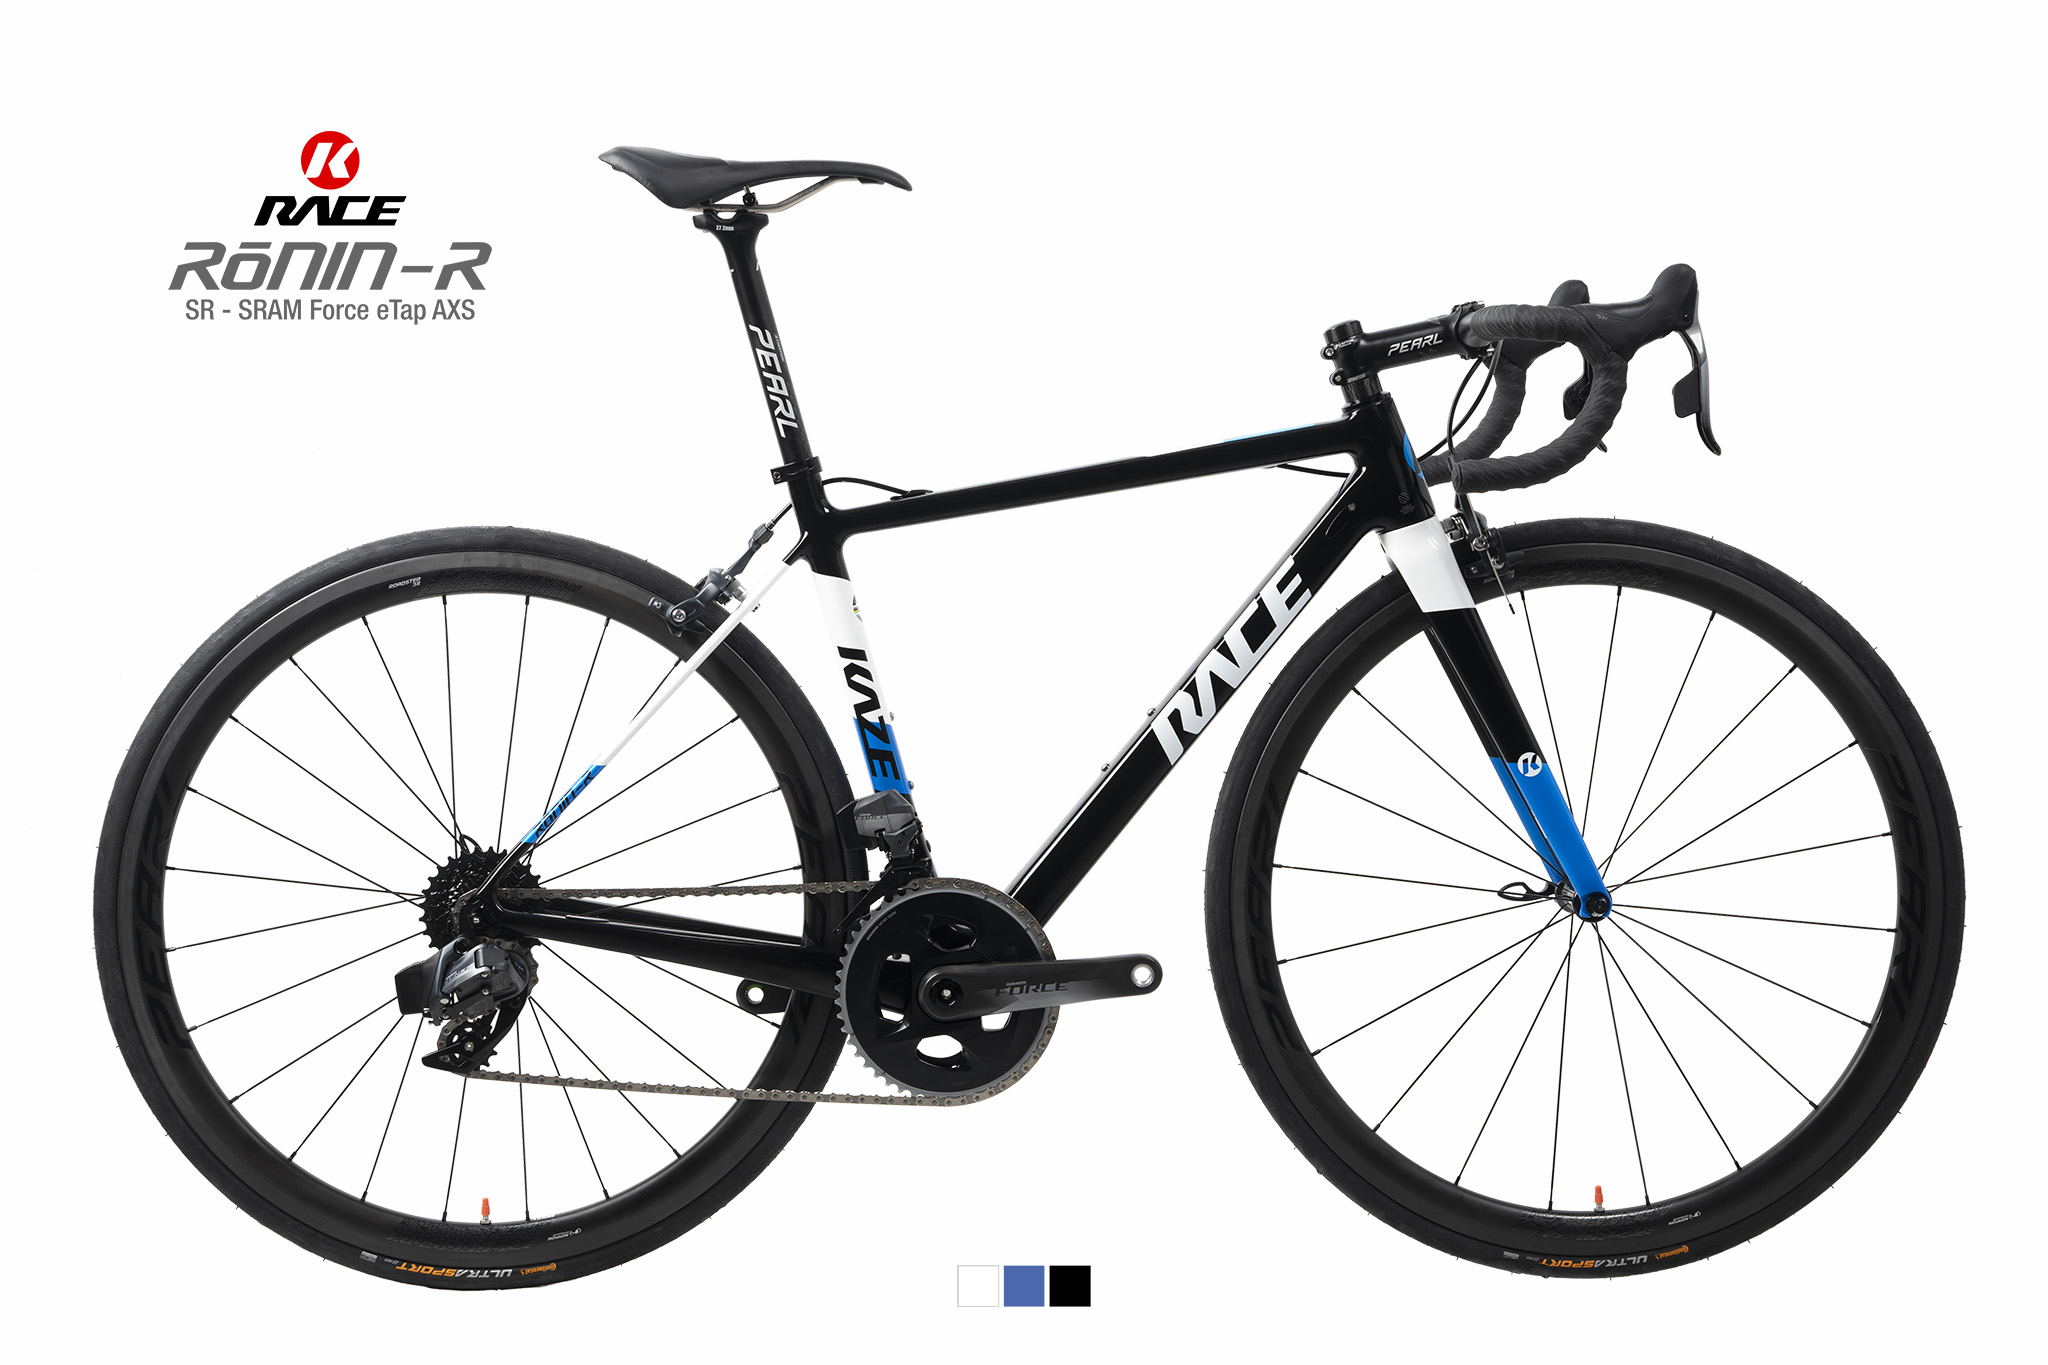 KAZE RACE | RONIN-R (SR version) SRAM Force eTap AXS™